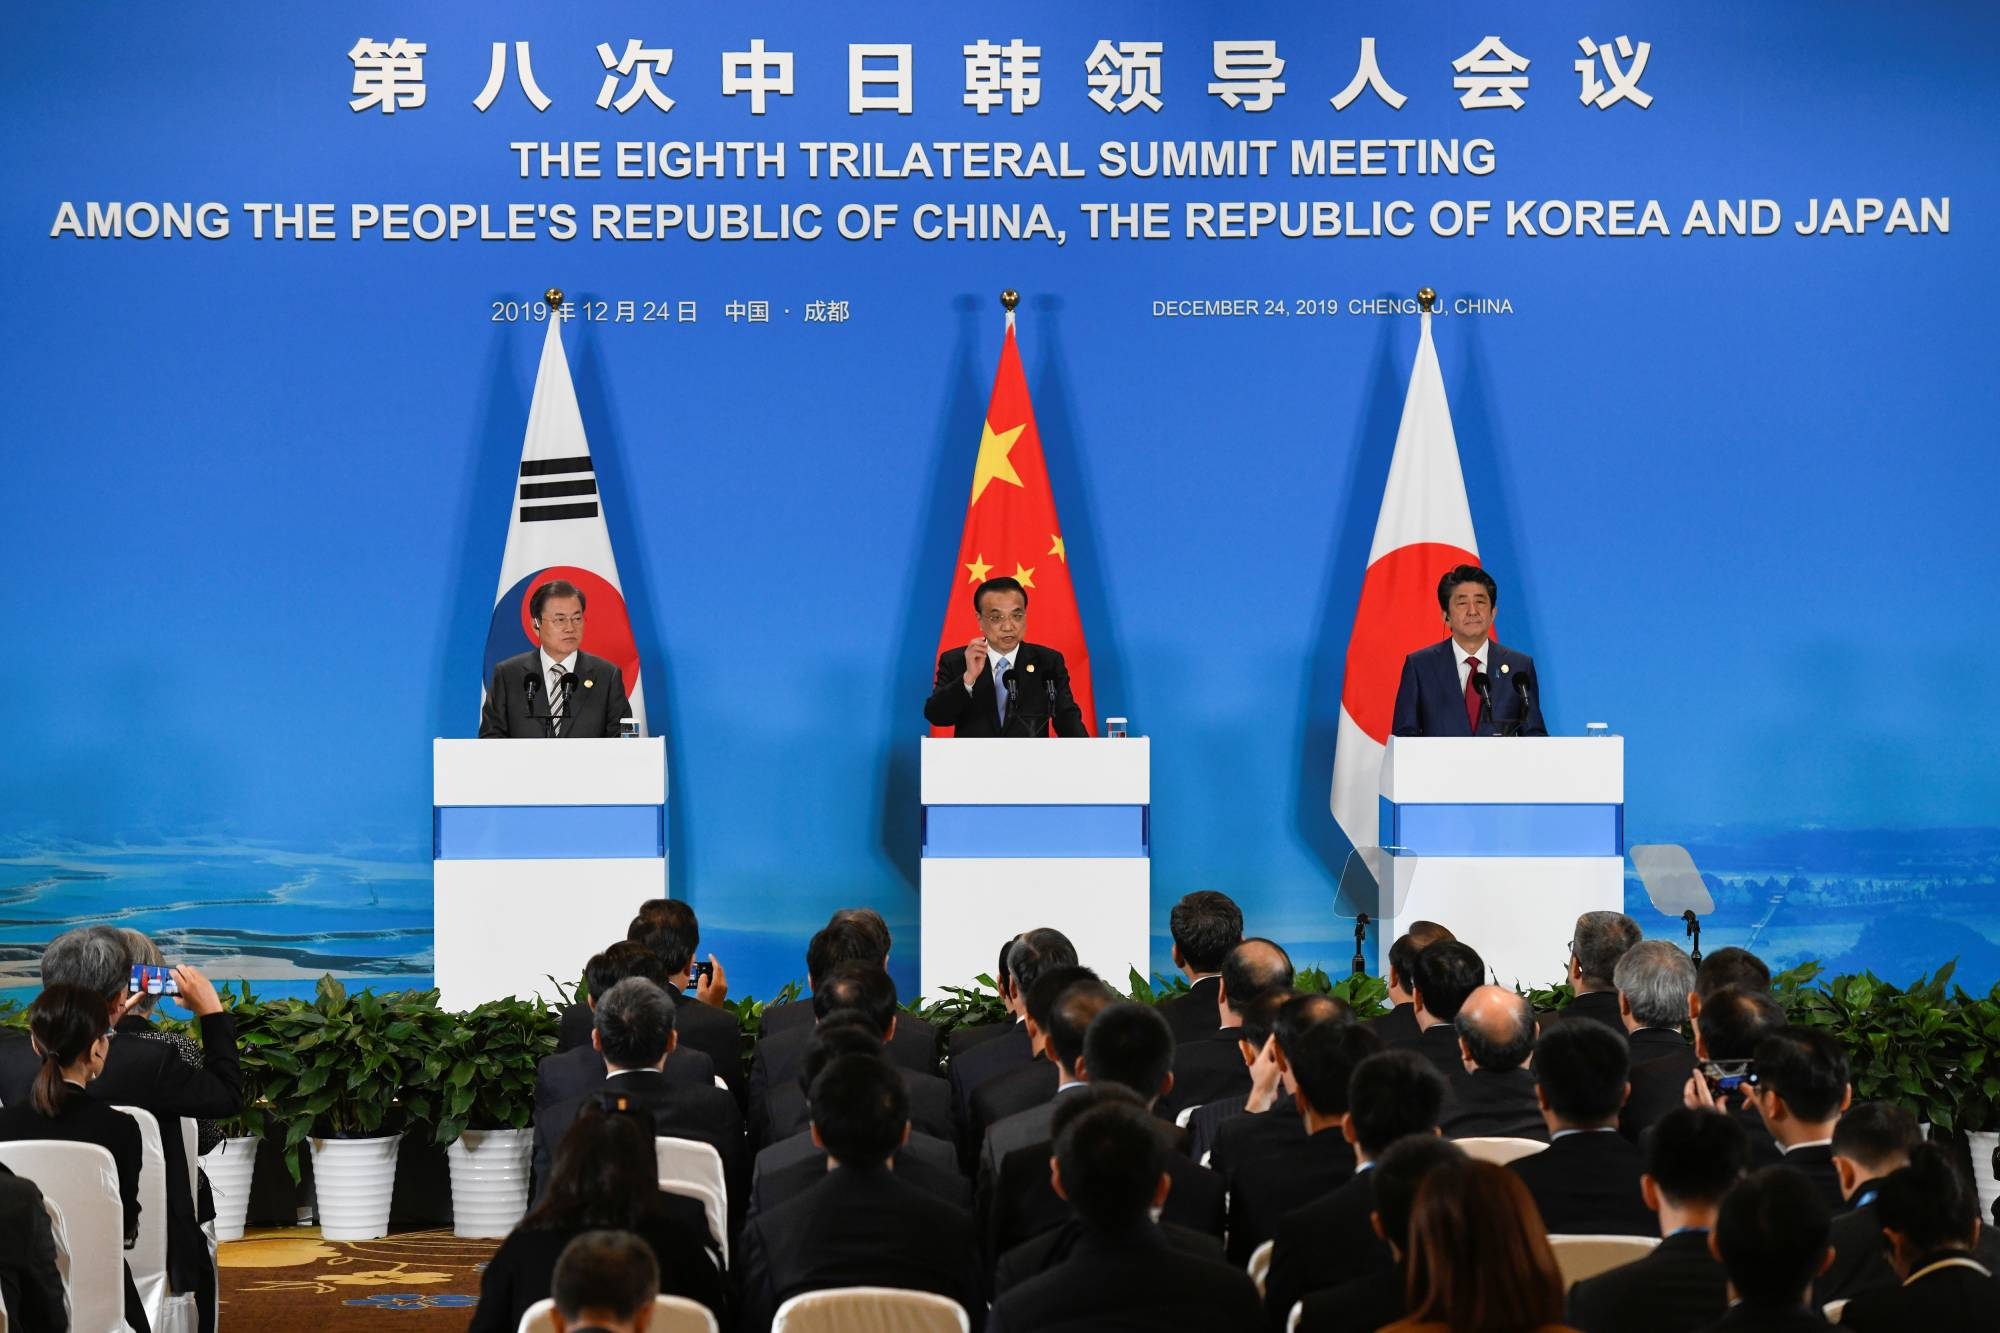 Prime Minister Shinzo Abe, Chinese Premier Li Keqiang and South Korean President Moon Jae-in meet at the Eighth Trilateral Summit on Dec. 24. More venues, forums and platforms are needed for Japanese, South Koreans and Chinese to reconcile their differences. | REUTERS